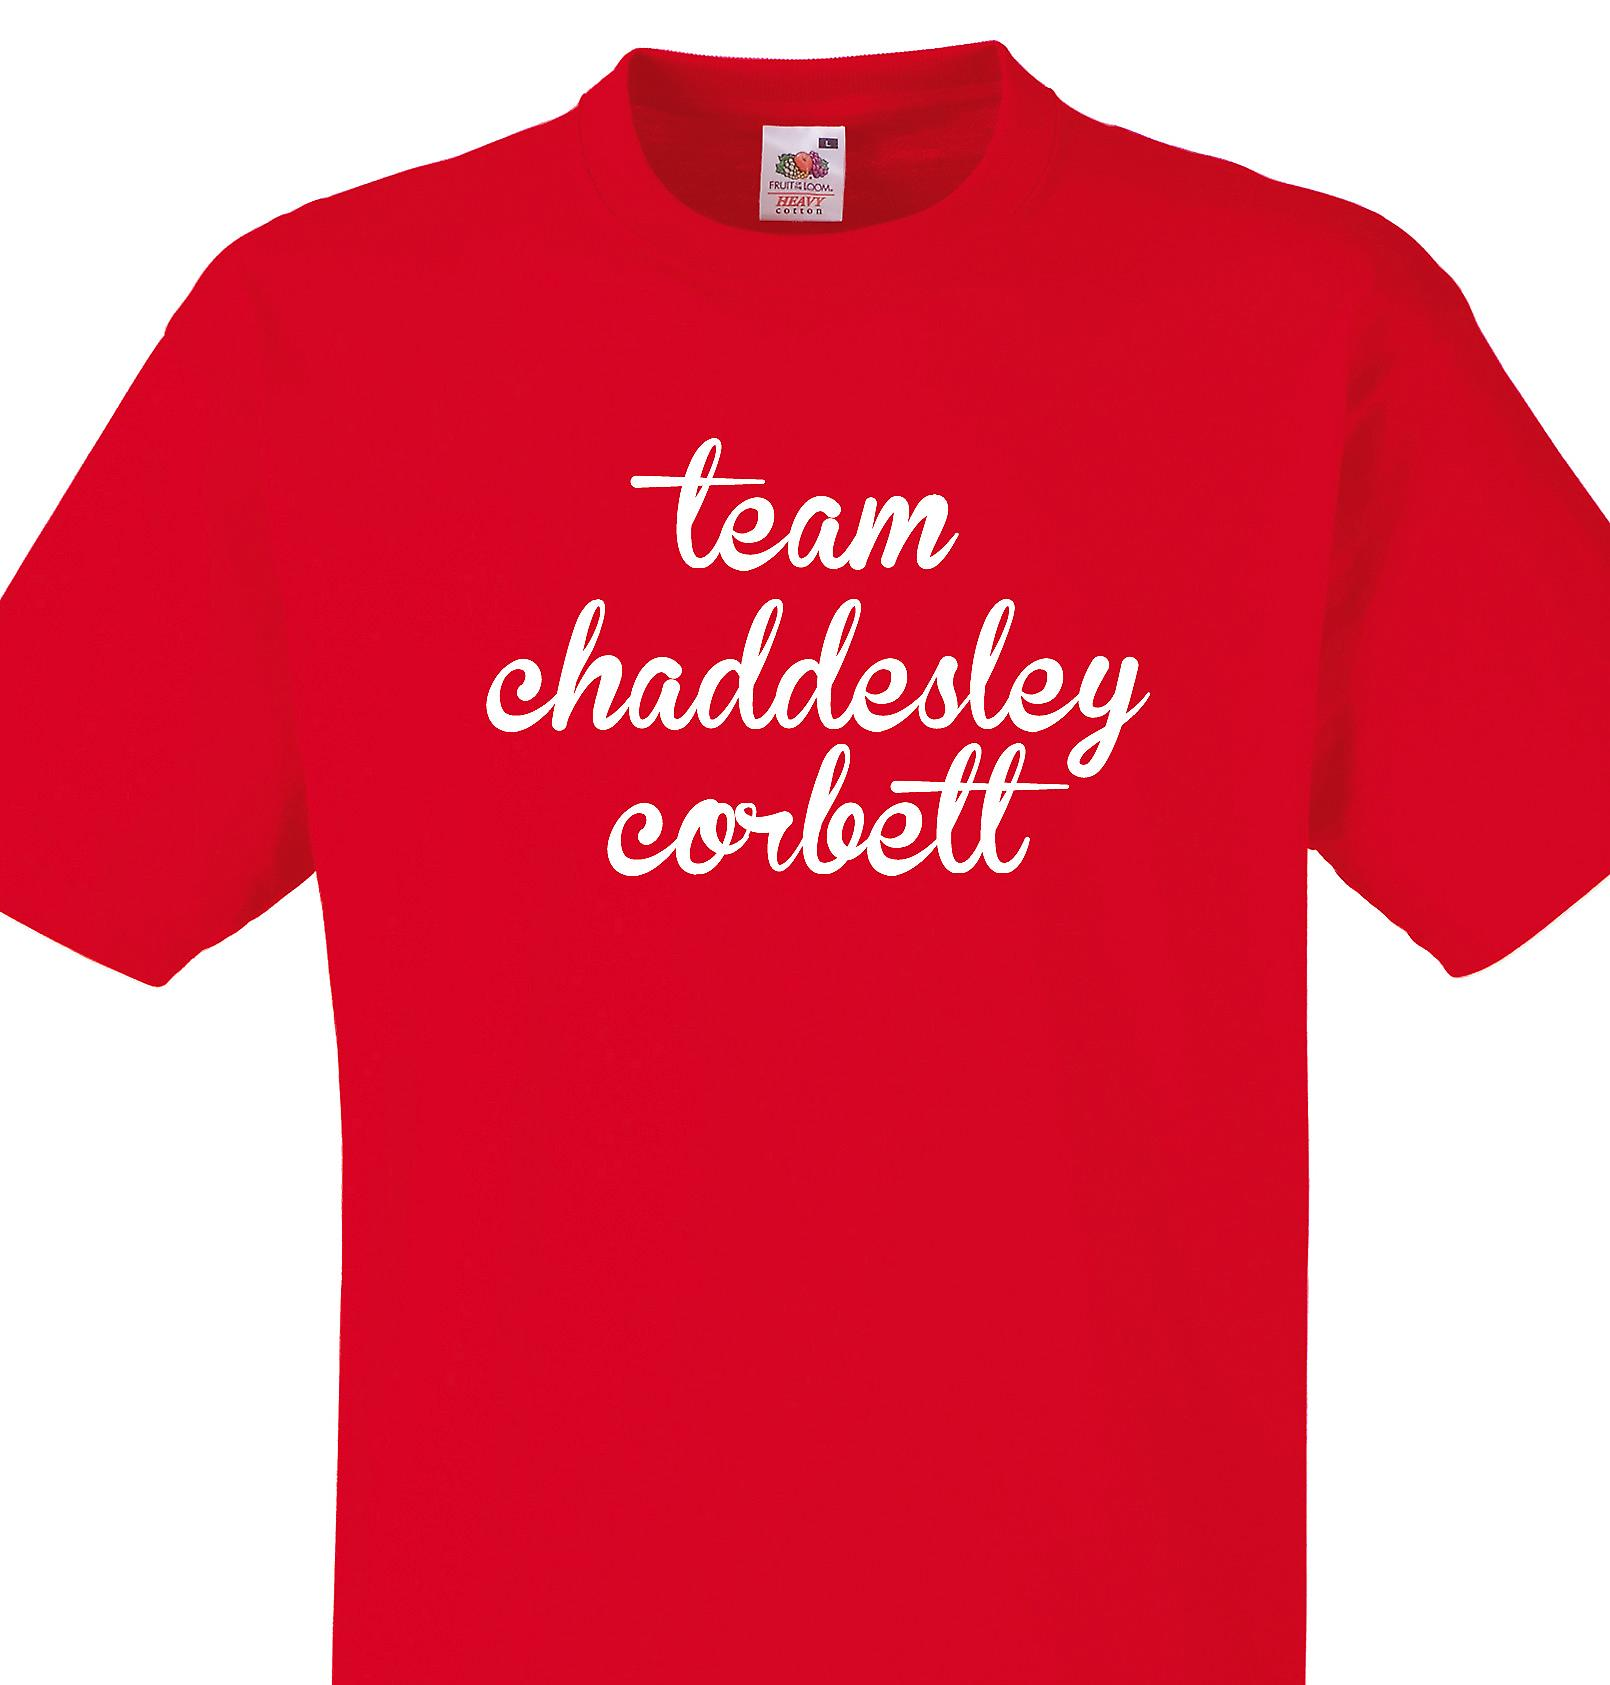 Team Chaddesley corbett Red T shirt